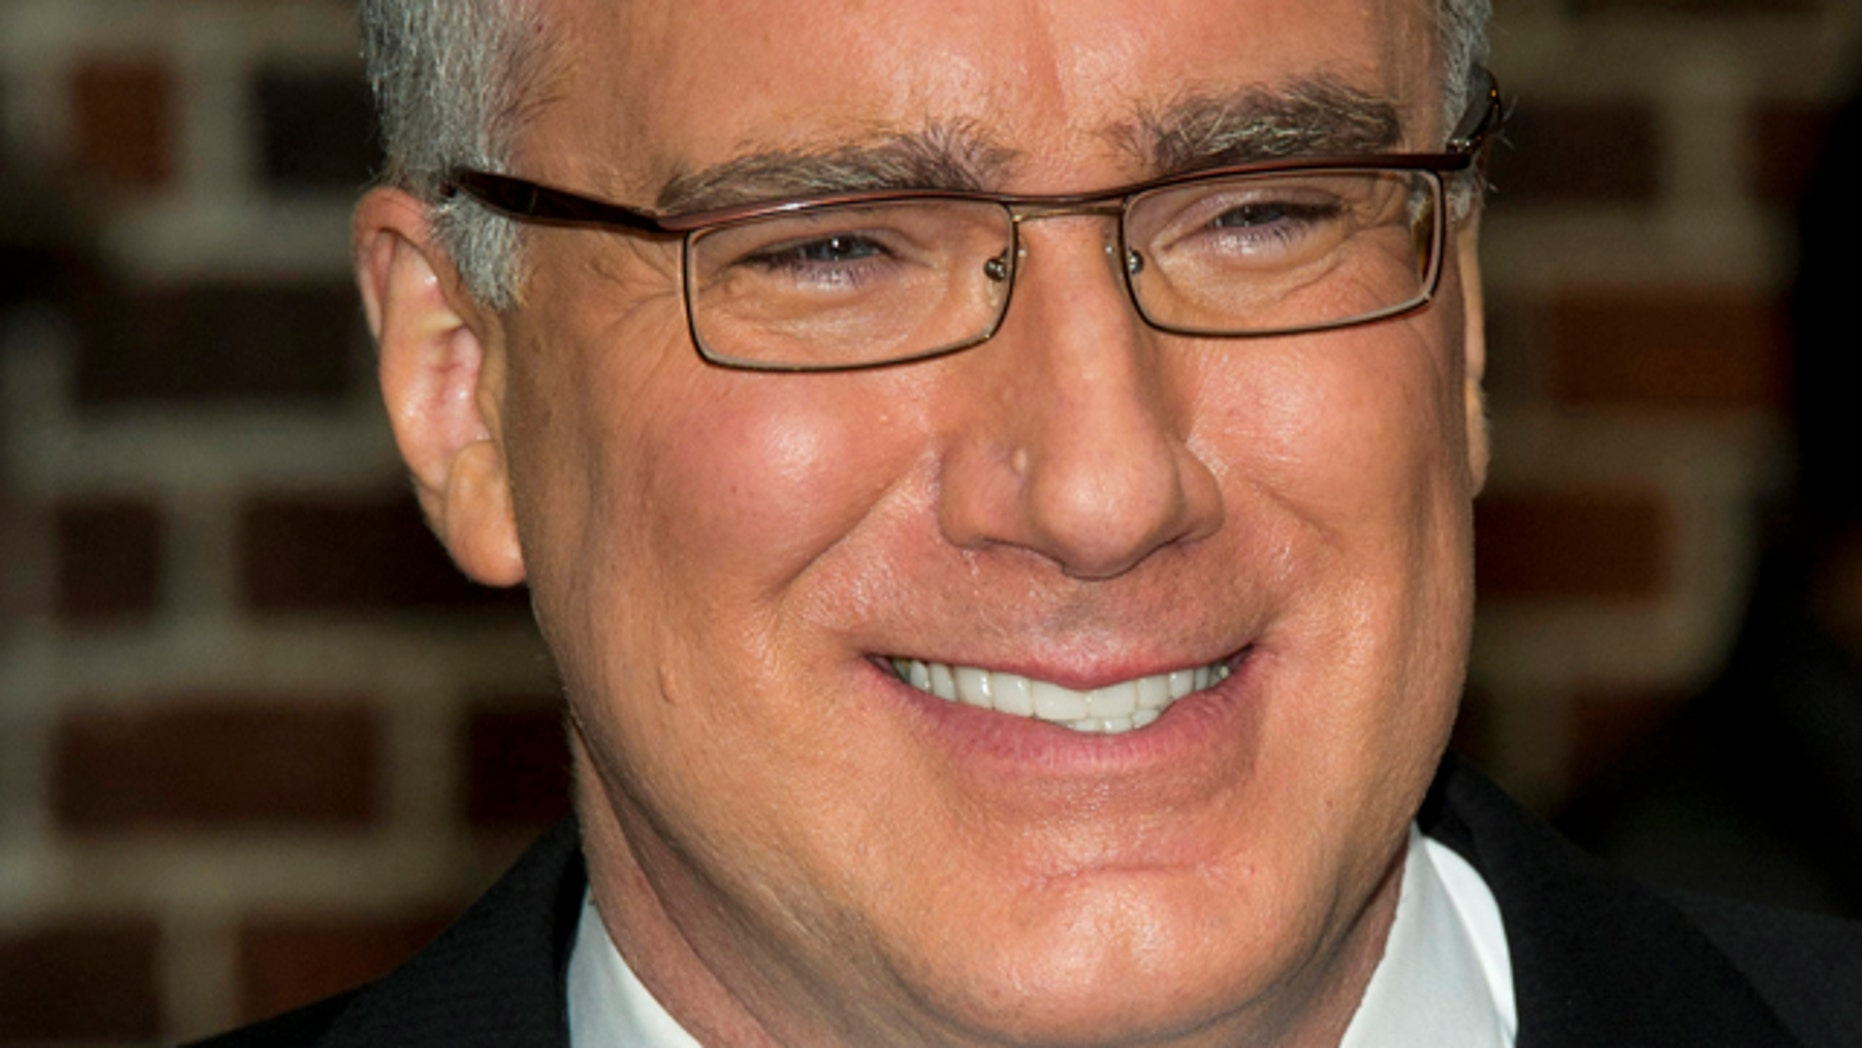 FILE - In this Oct. 24, 2011 file photo, political pundit Keith Olbermann leaves a taping of the 'Late Show with David Letterman' in New York.